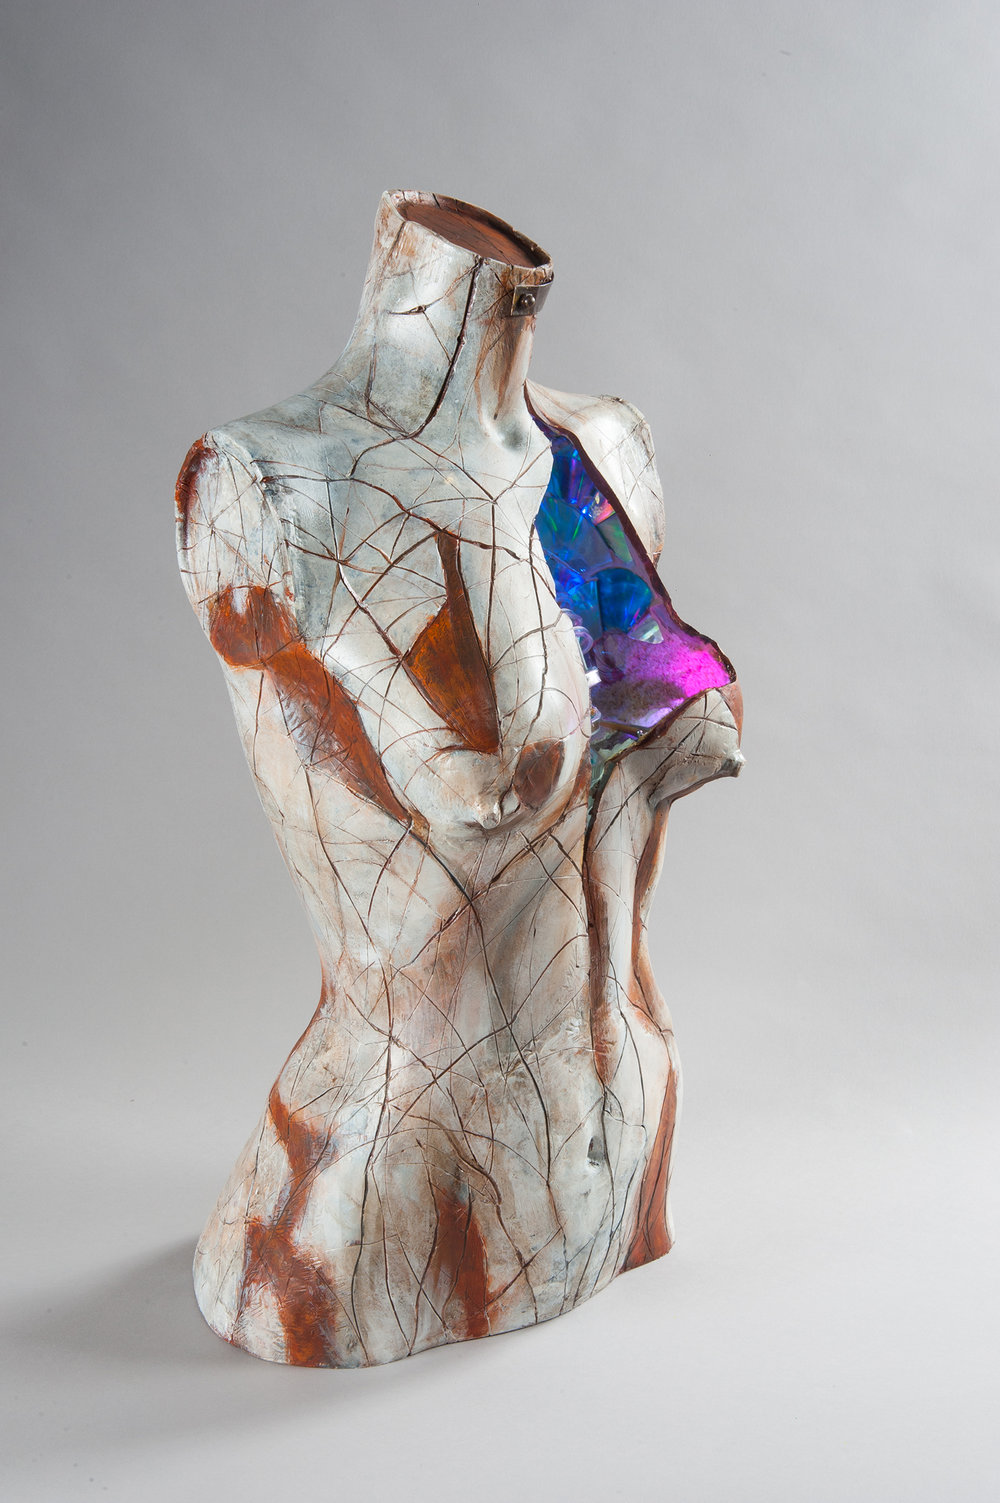 Ceramic - Reclaimed torso, sand,cd's, LEDs, microprocessorPrivate Collection